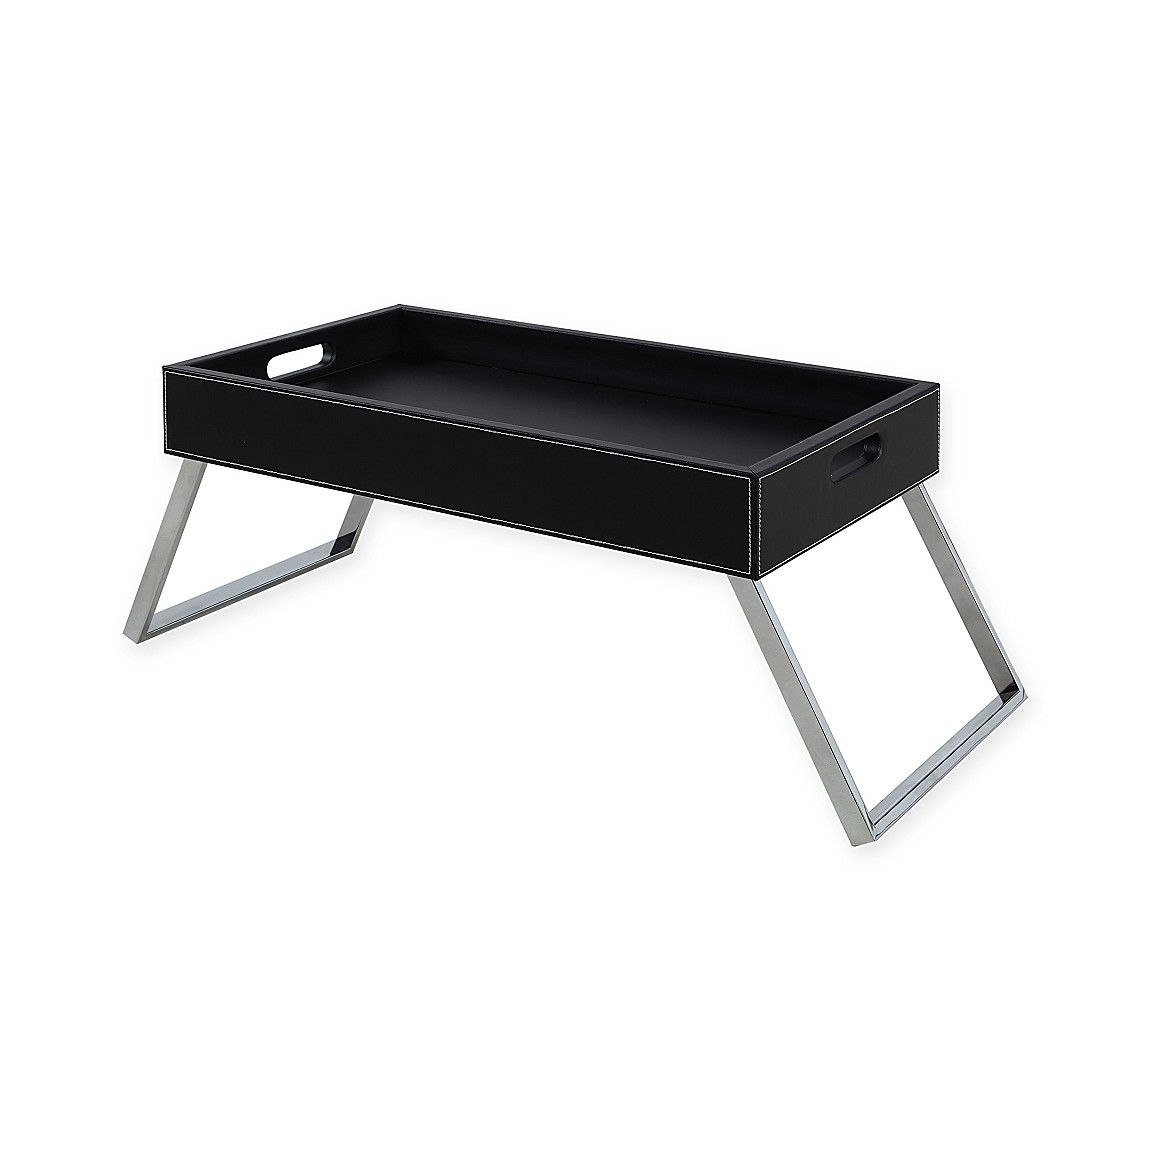 Breakfast Is Better In Bed Bed Bath Beyond Folding Beds Bed